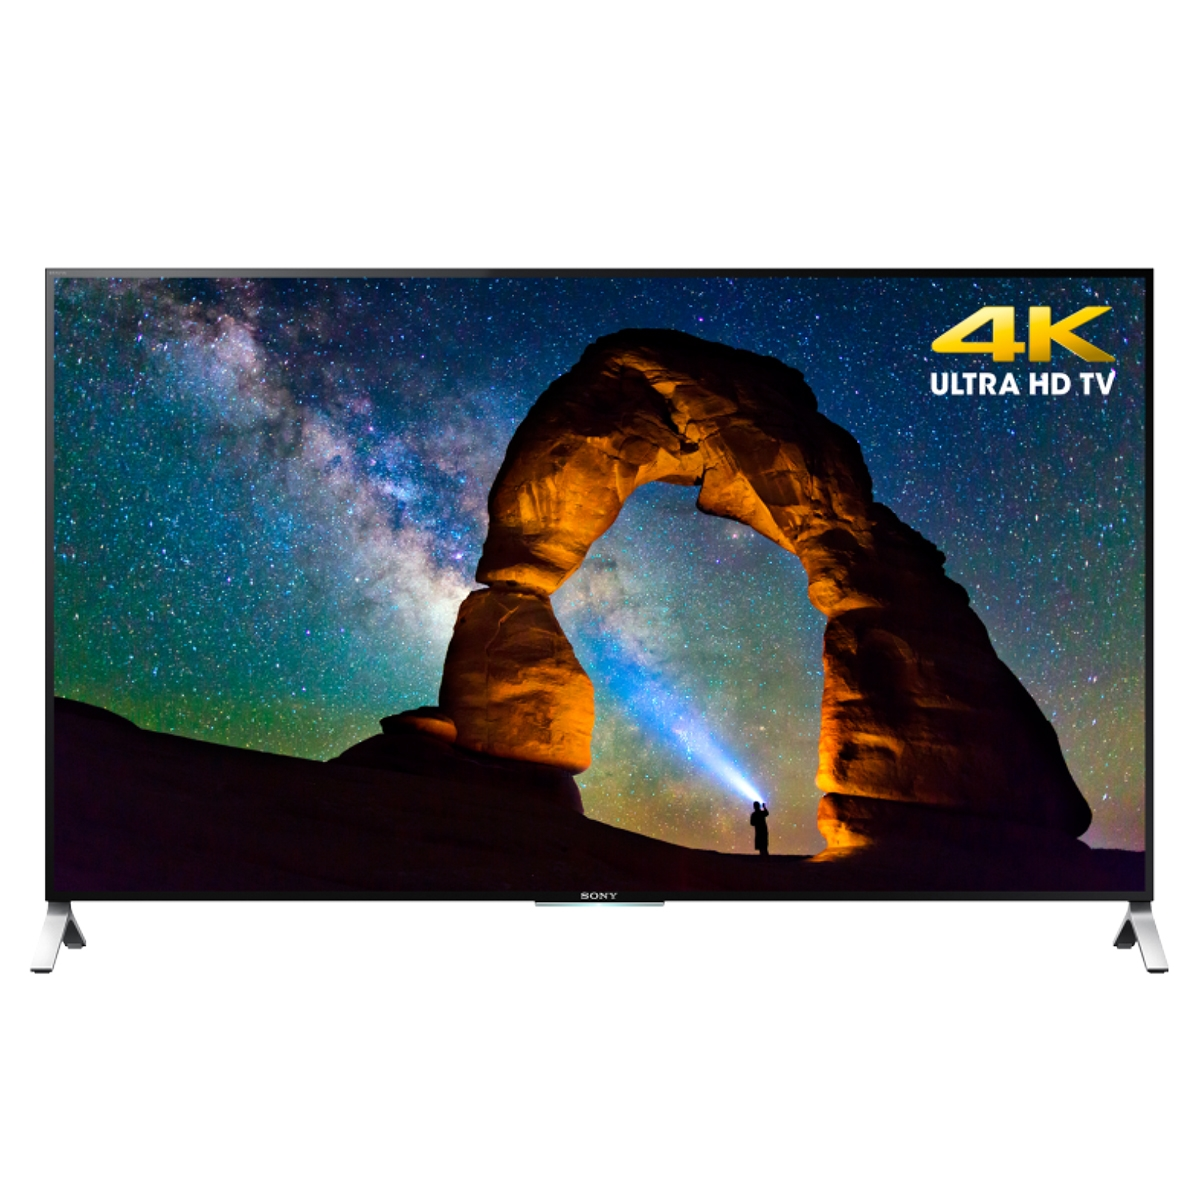 SONY 55INCH CLASS UHD 4K LED SMART HDTV - XBR55X900C - RESIDENTIAL USA VERSION -SONY ORIGINAL PANEL - FULL ONE YEAR MANUFACTURERS WARRANTY!